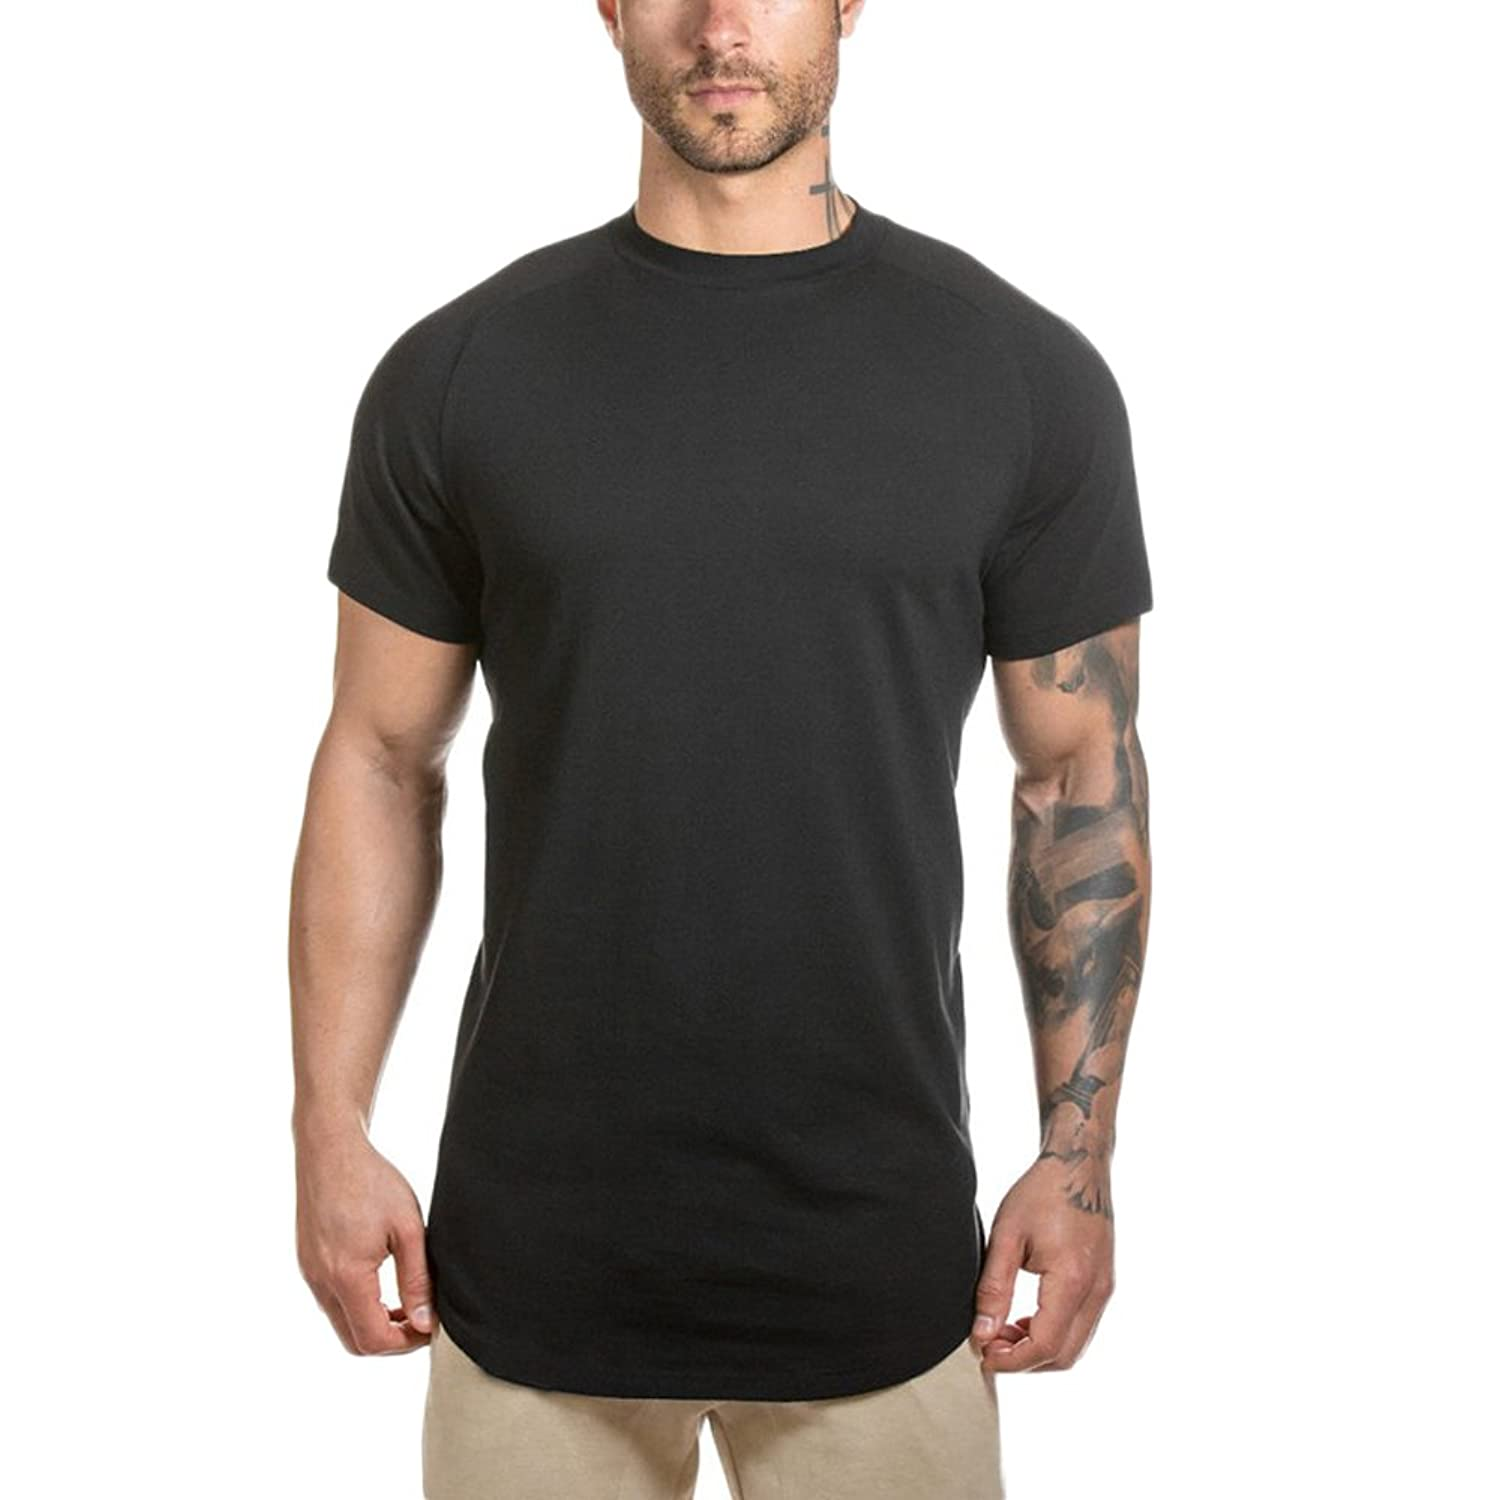 533f1350 short sleeve t-shirt with fashion stylish design,complete with curved  hemline,classcial crewneck,side split,longling elong length tshirt,easy  match with ...